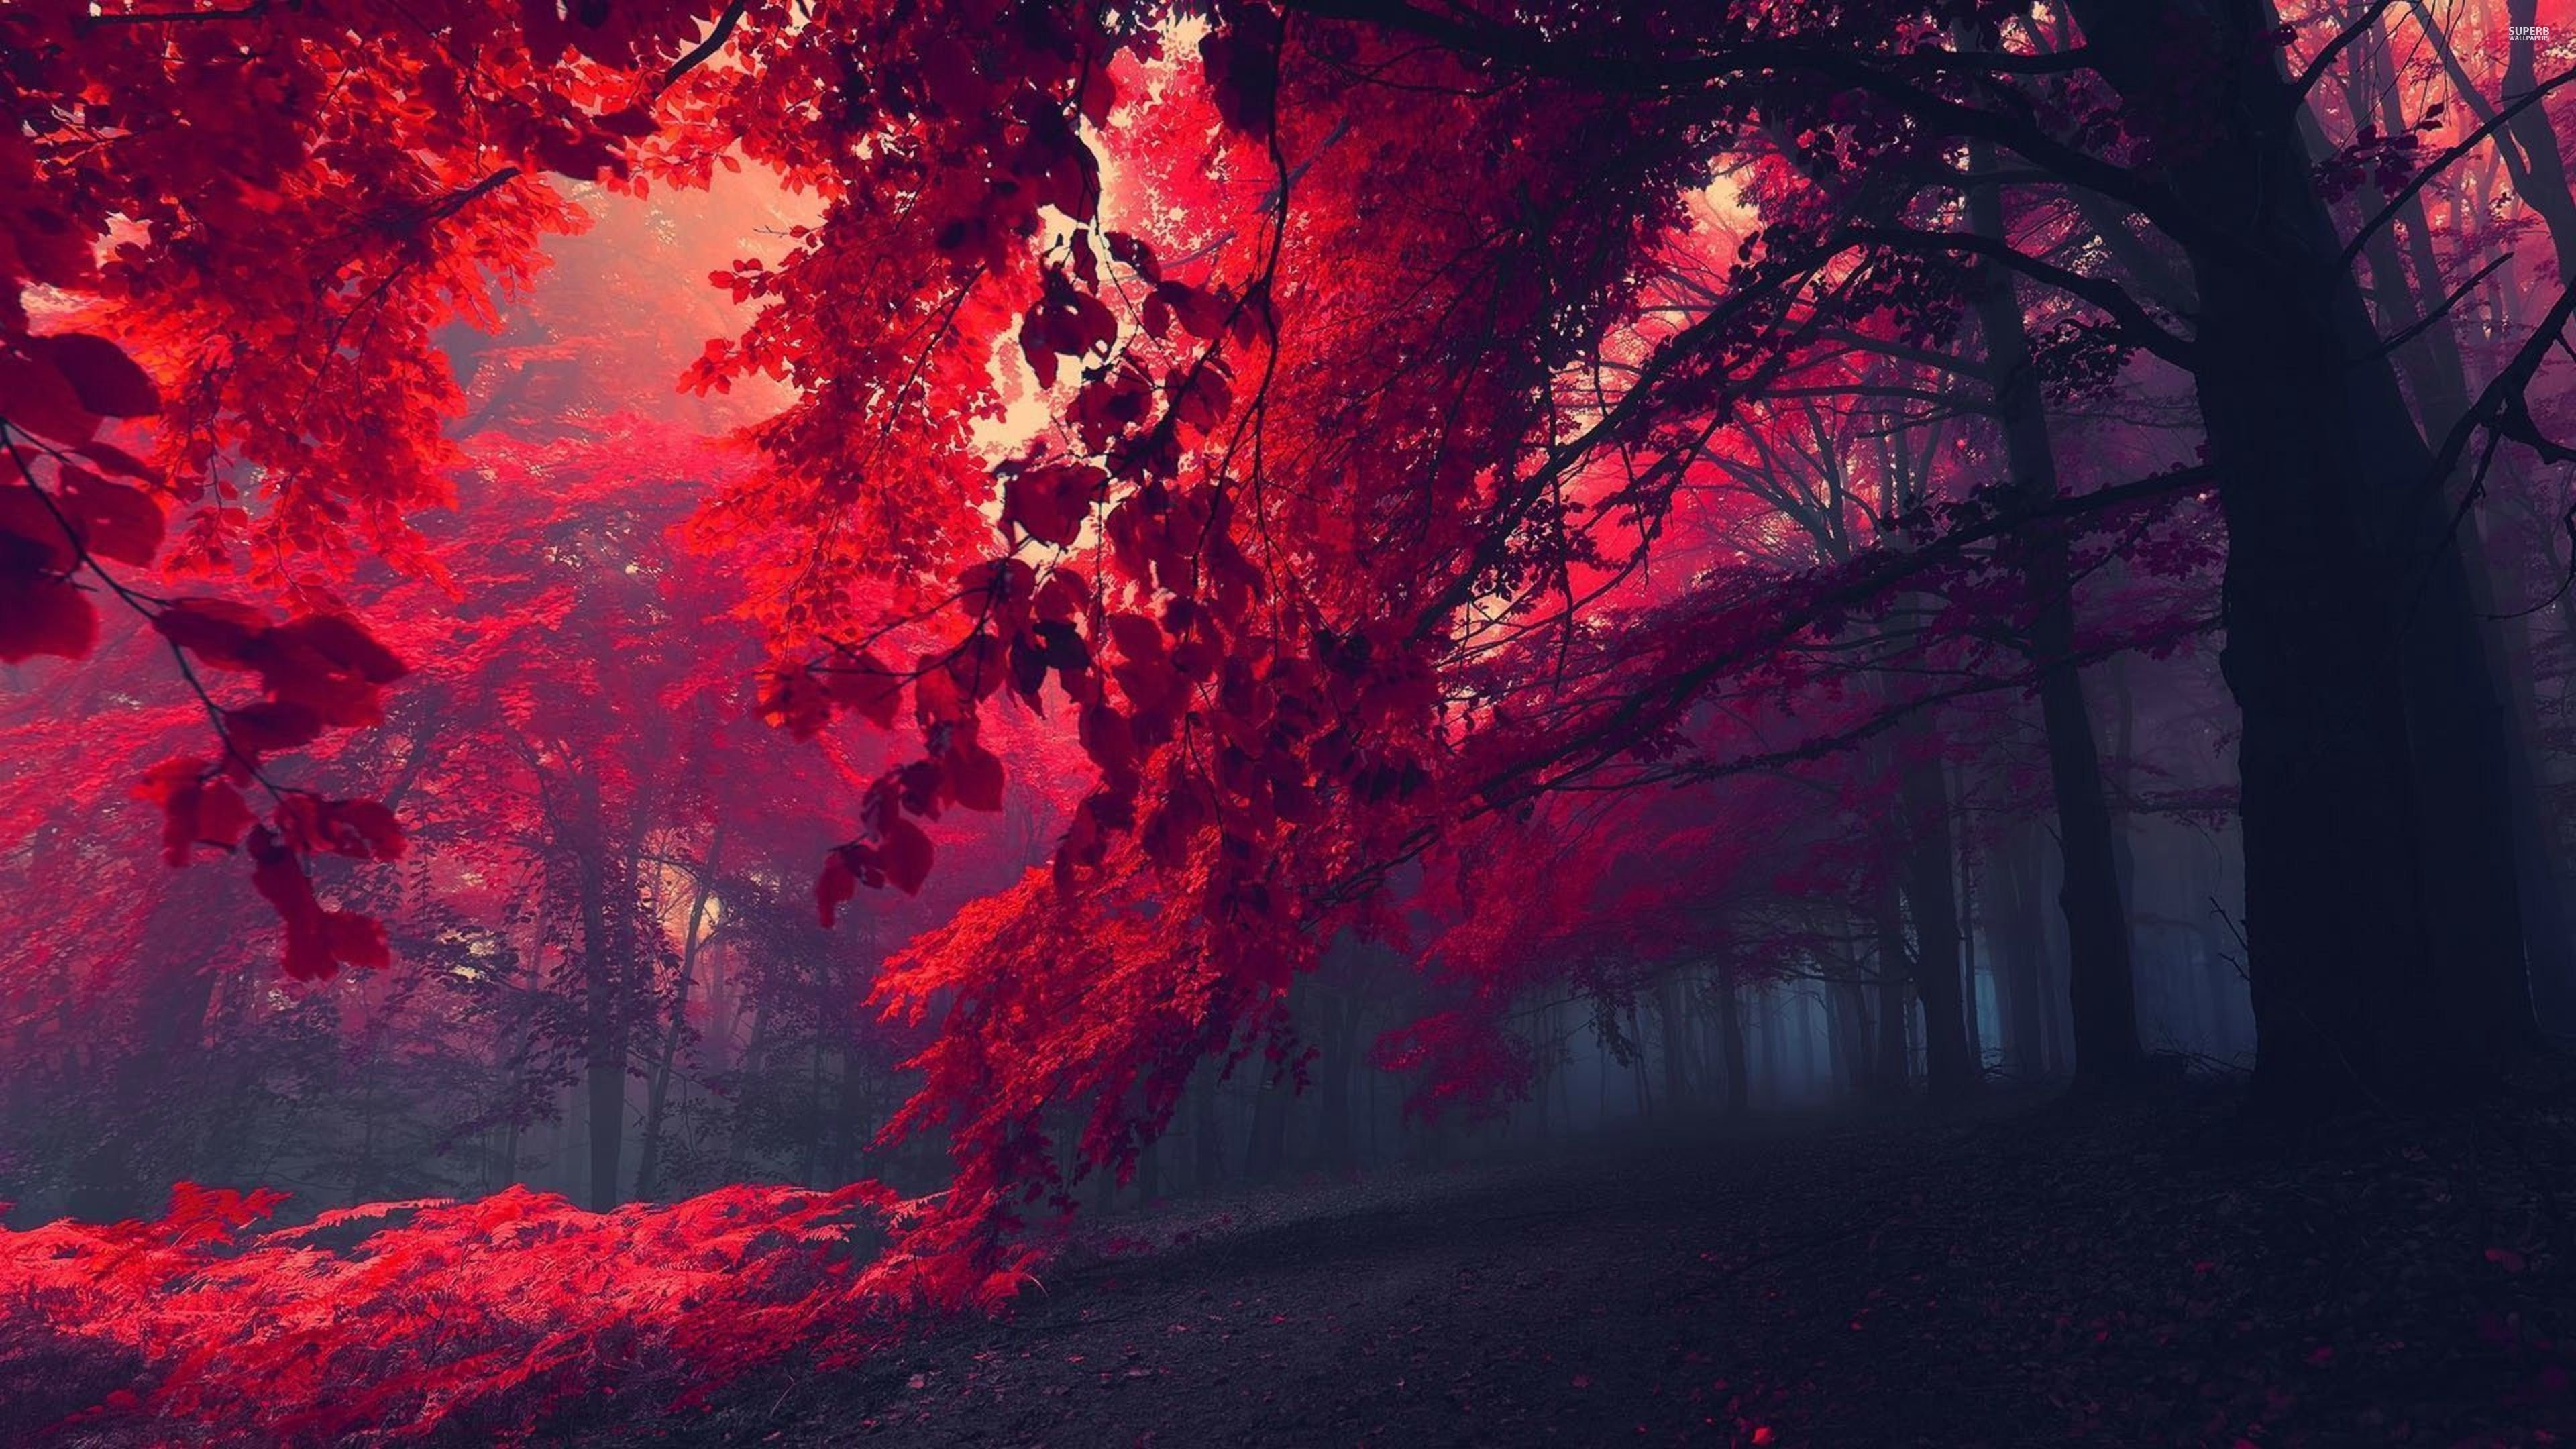 Red forest 26750 3840x2160 wallpaper 3840x2160 317502 3840x2160